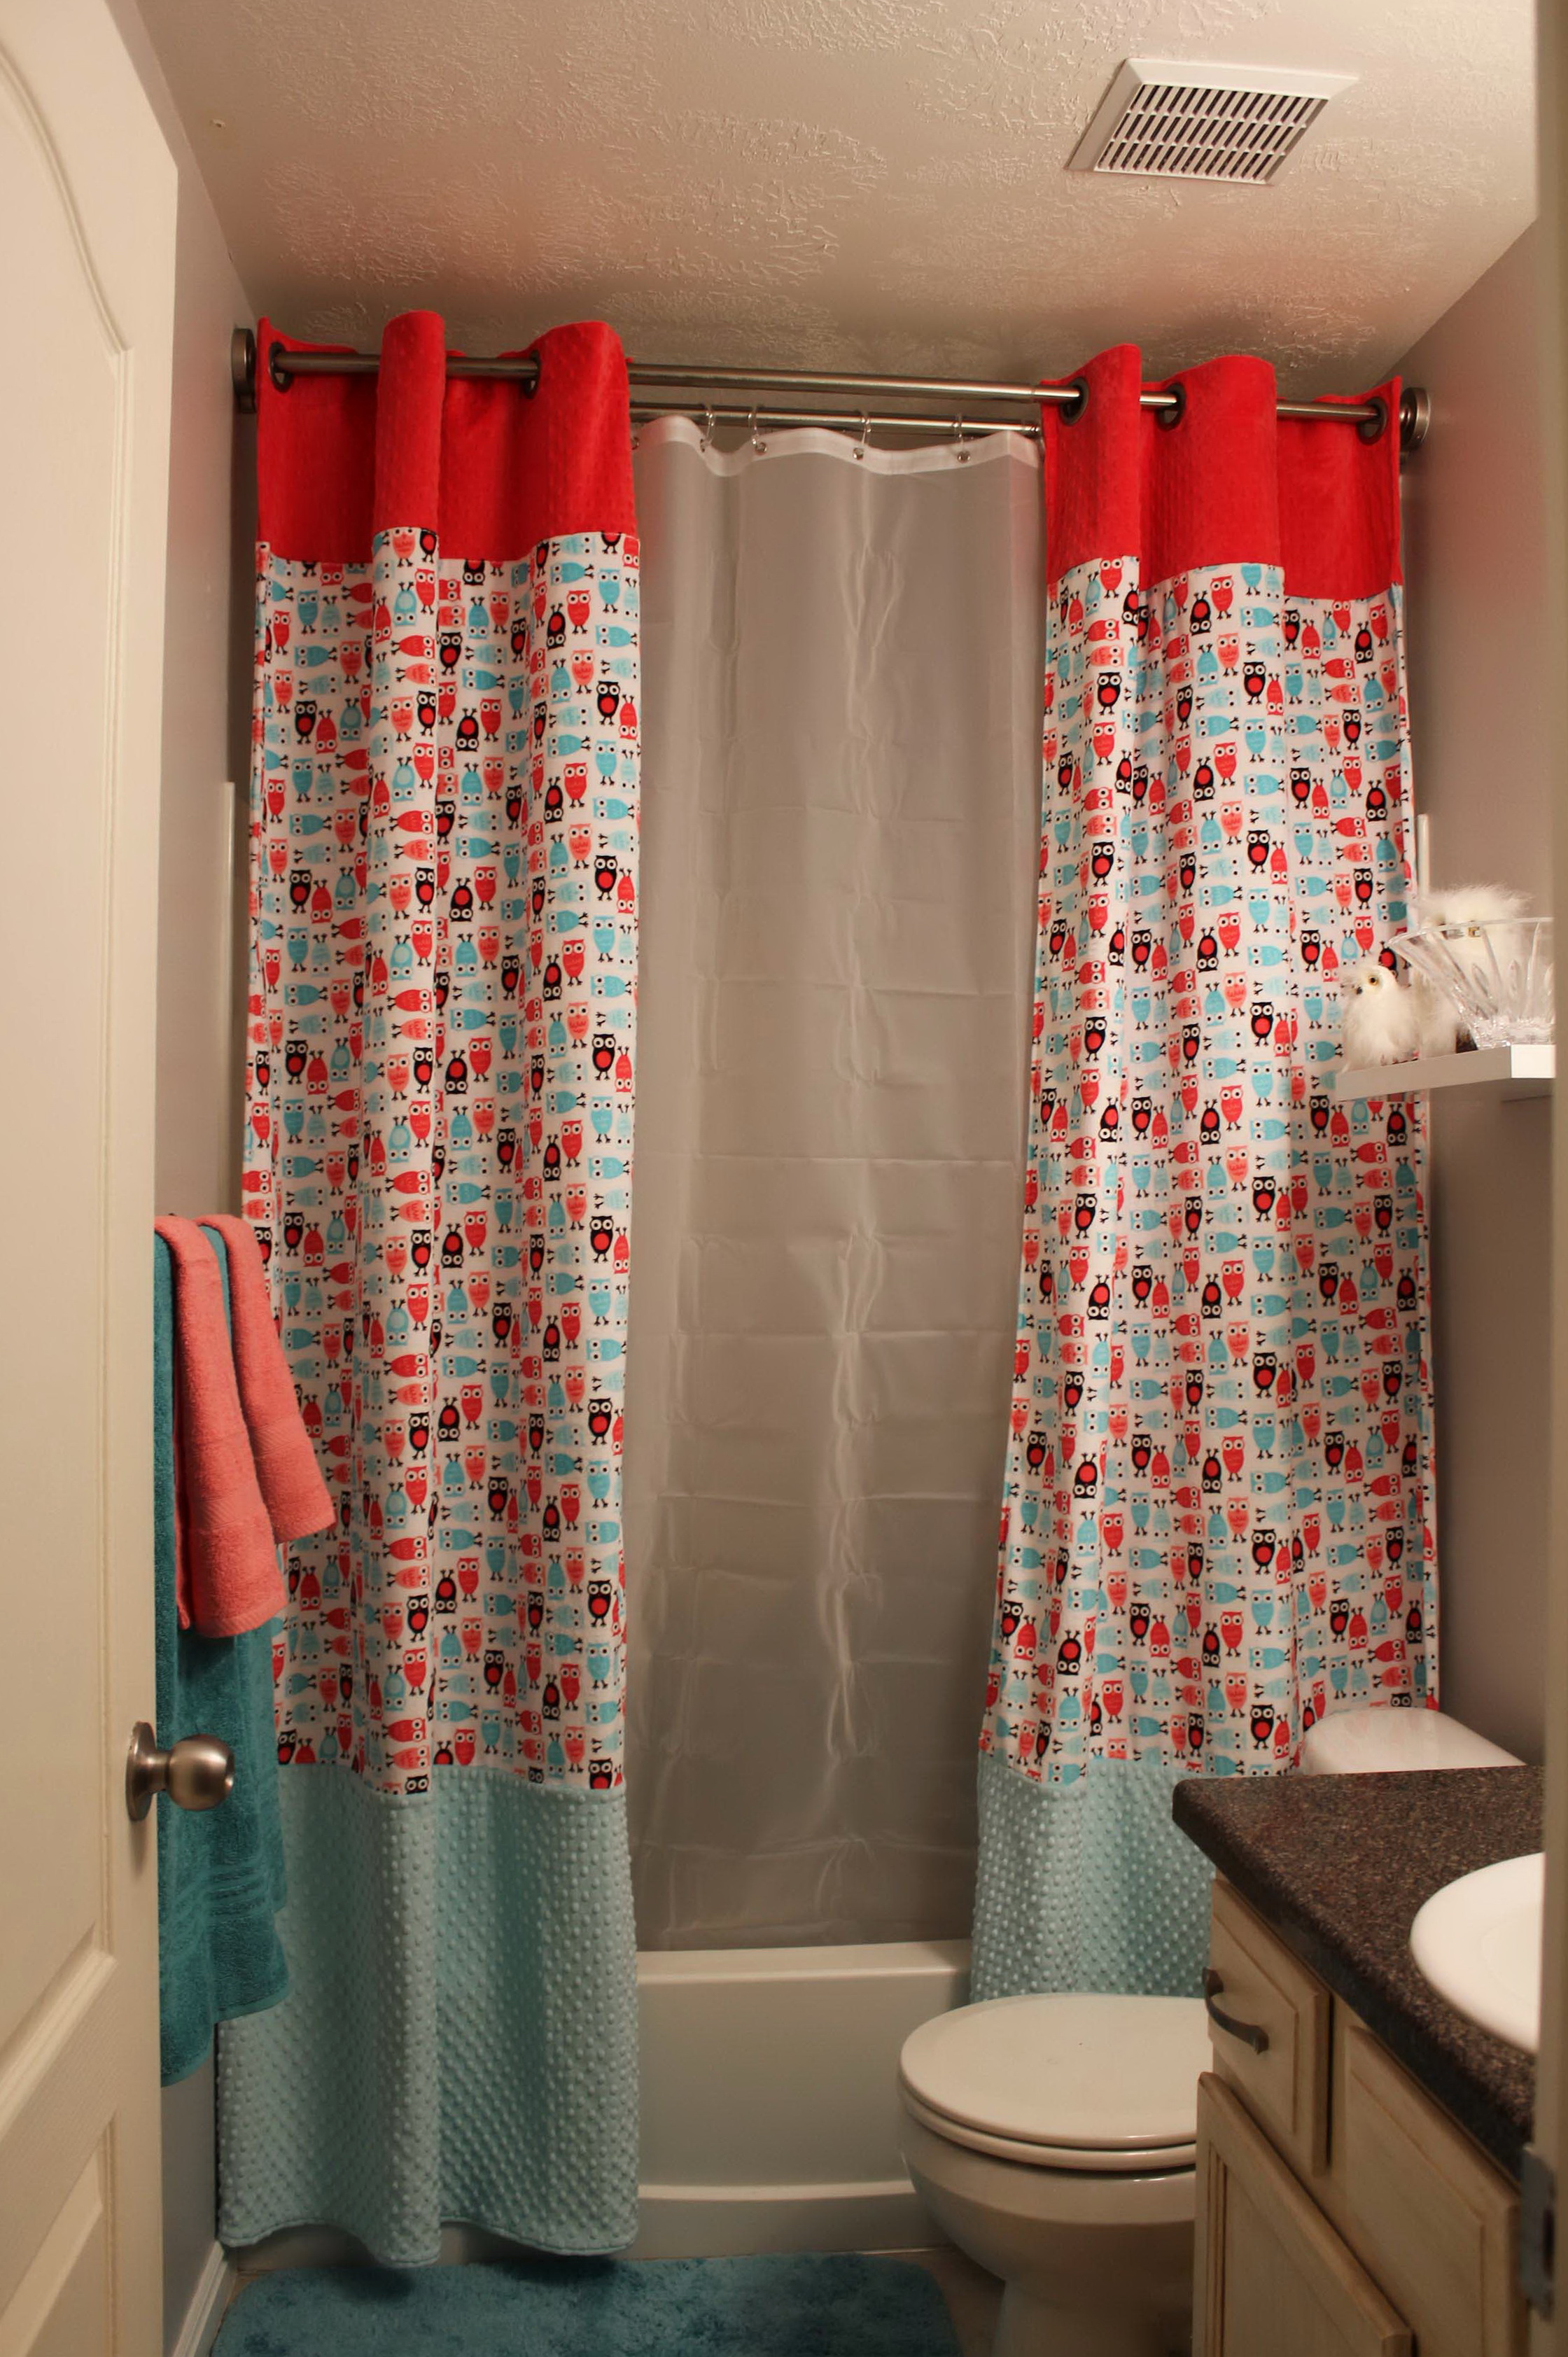 Nice shower curtains